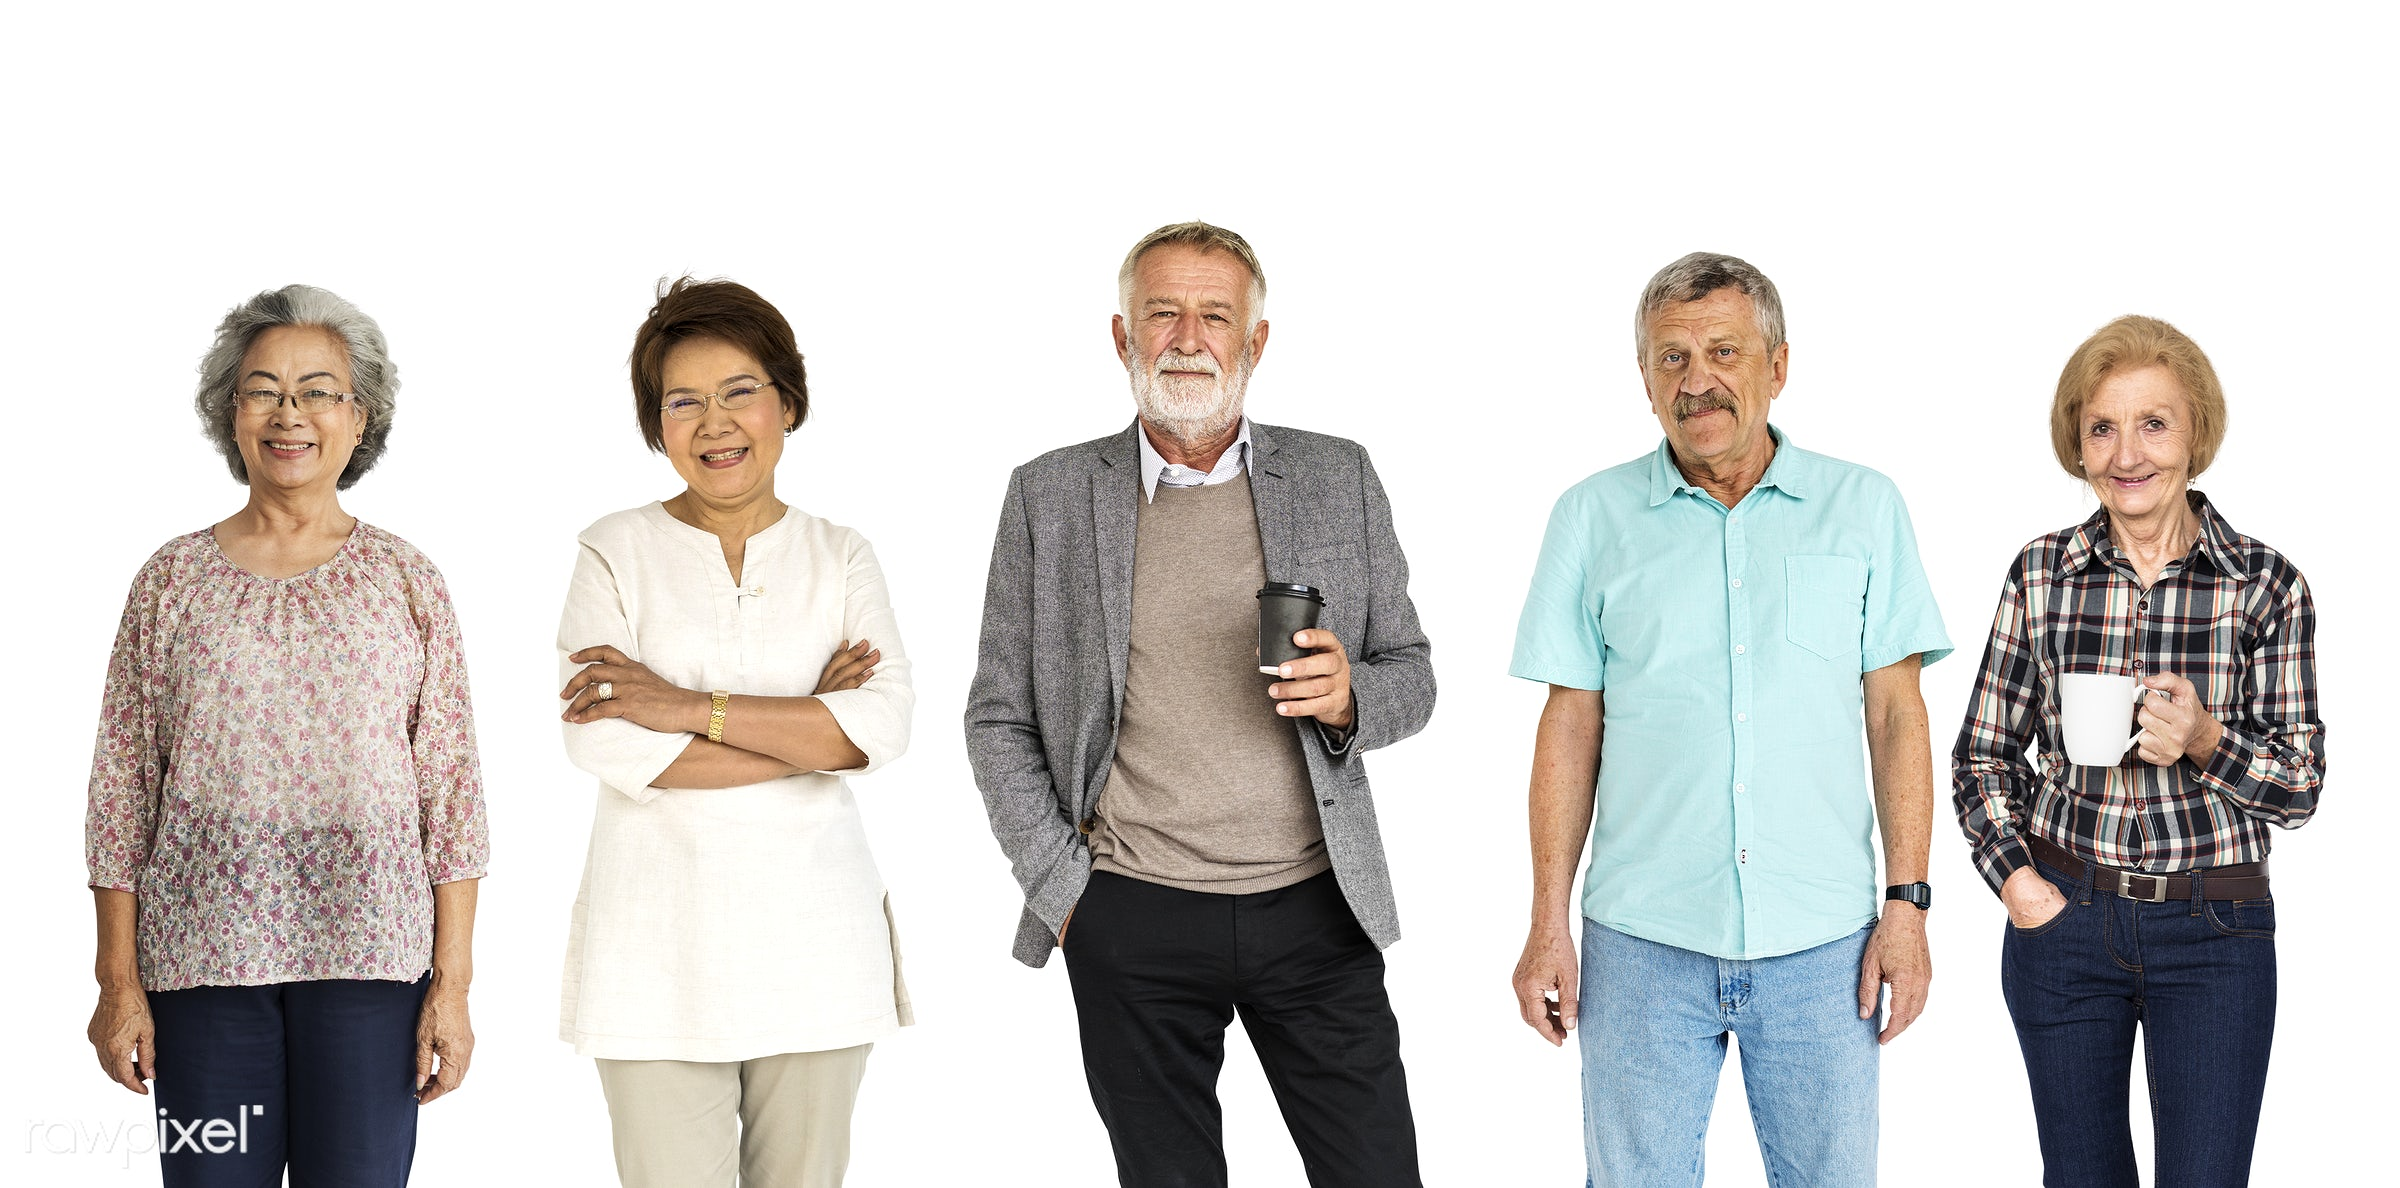 studio, old, person, diverse, set, retired, retire, collection, people, together, caucasian, asian, retirement, life, woman...